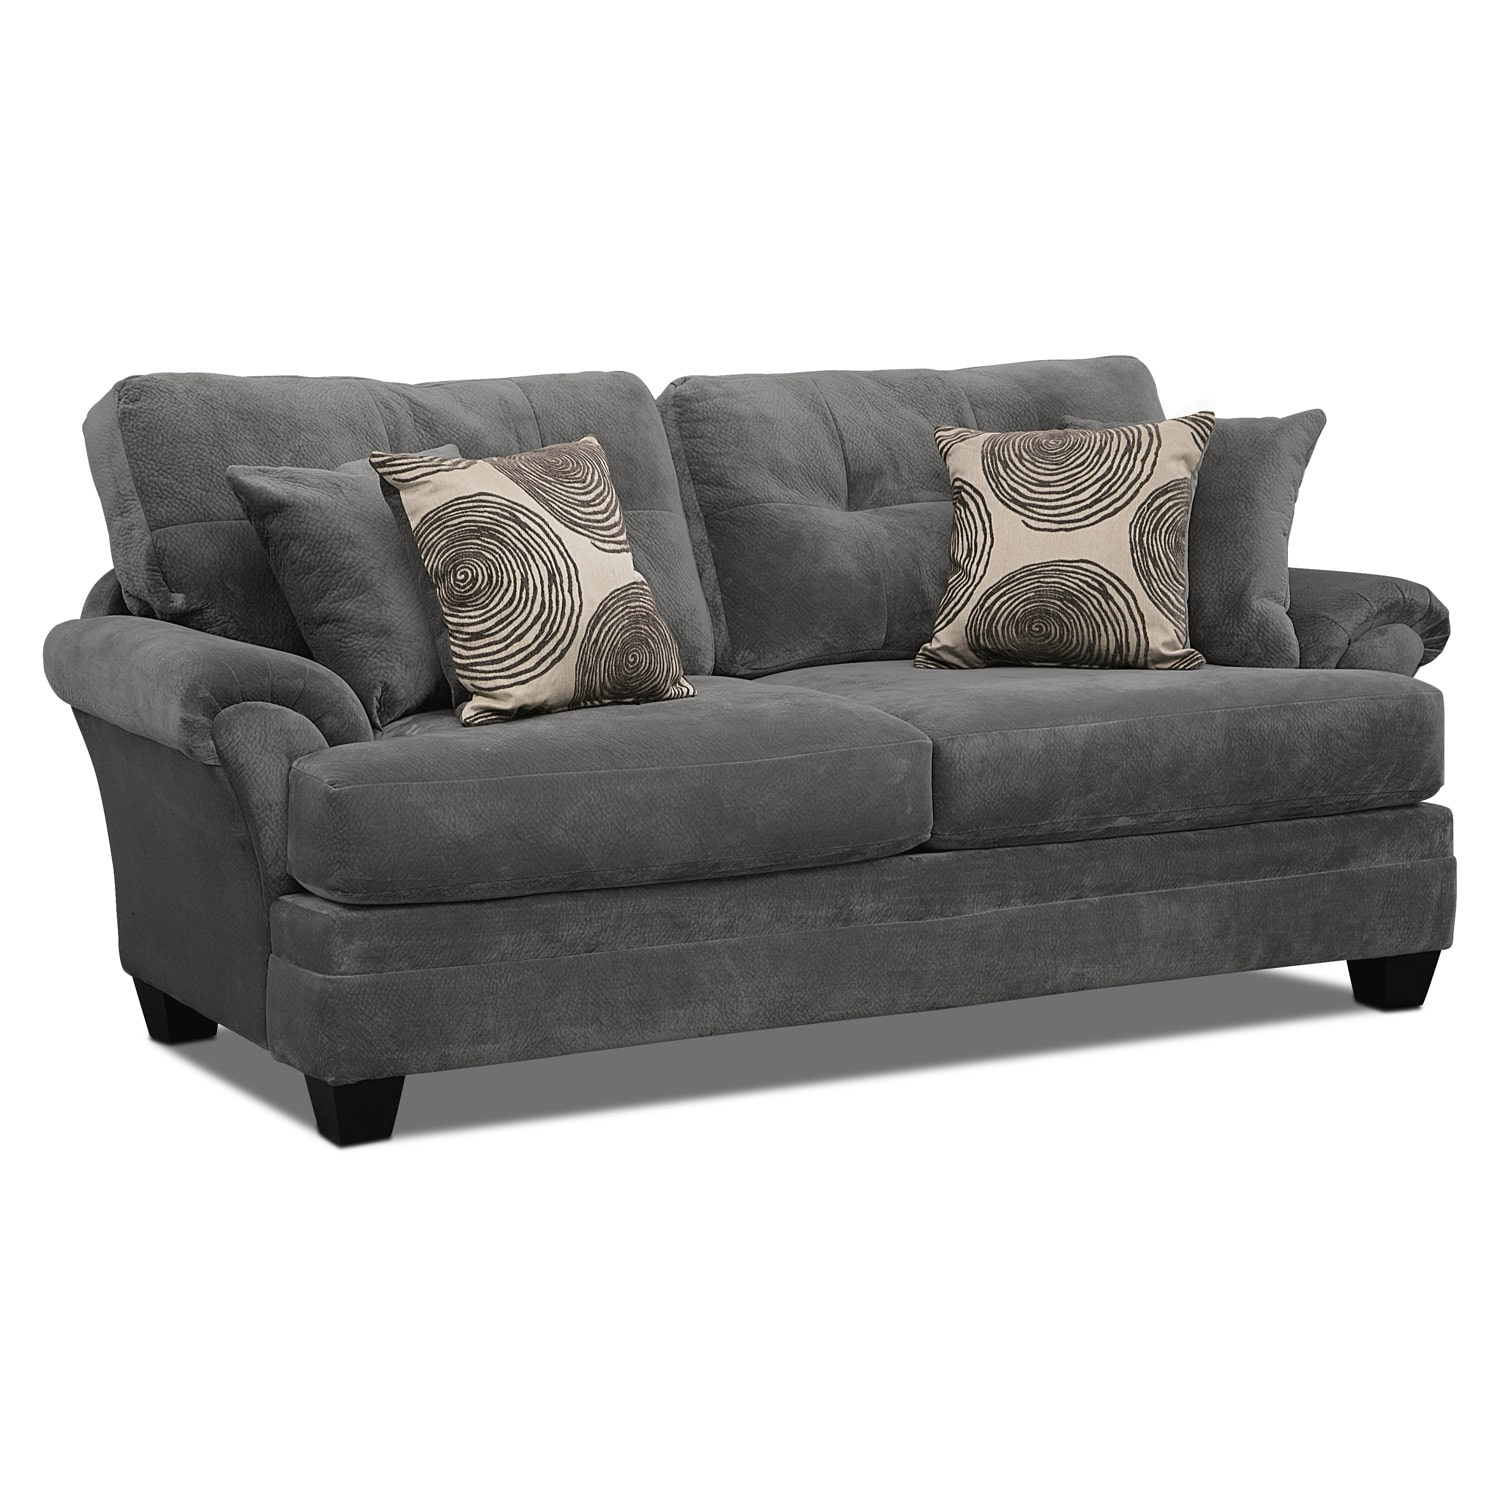 Cordelle sofa gray american signature furniture for Signature furniture